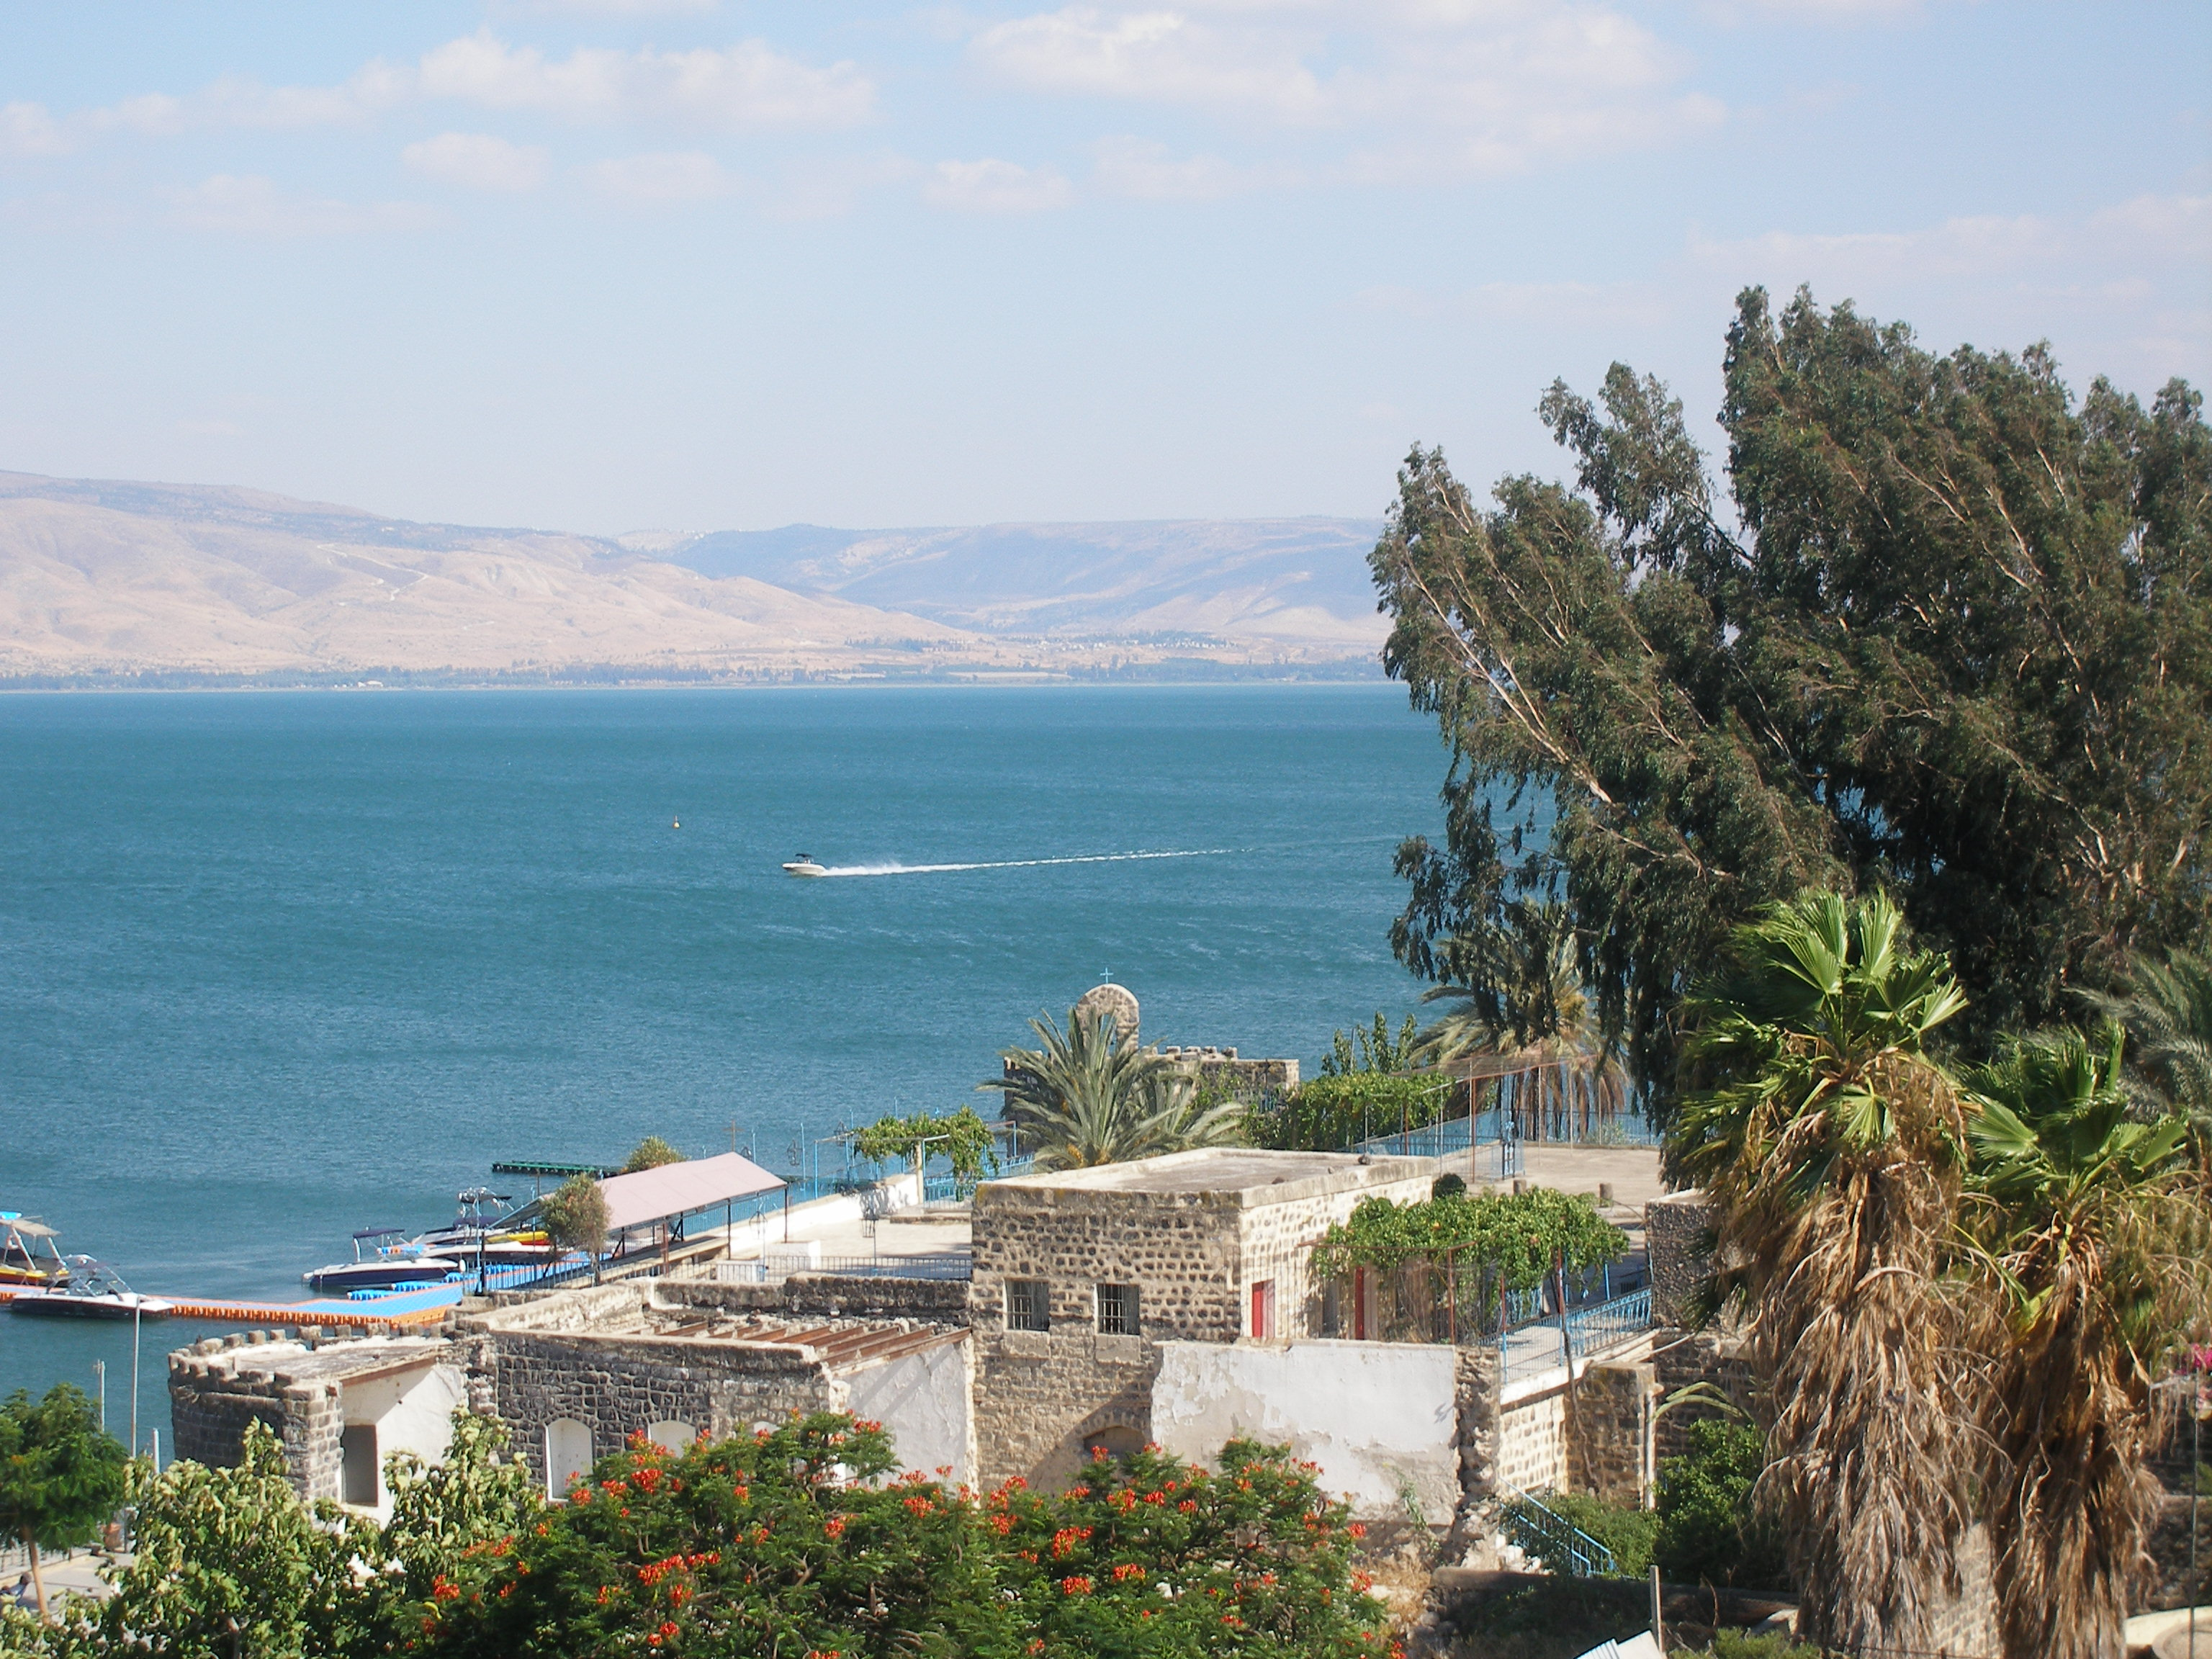 Sea of Galilee - 2008